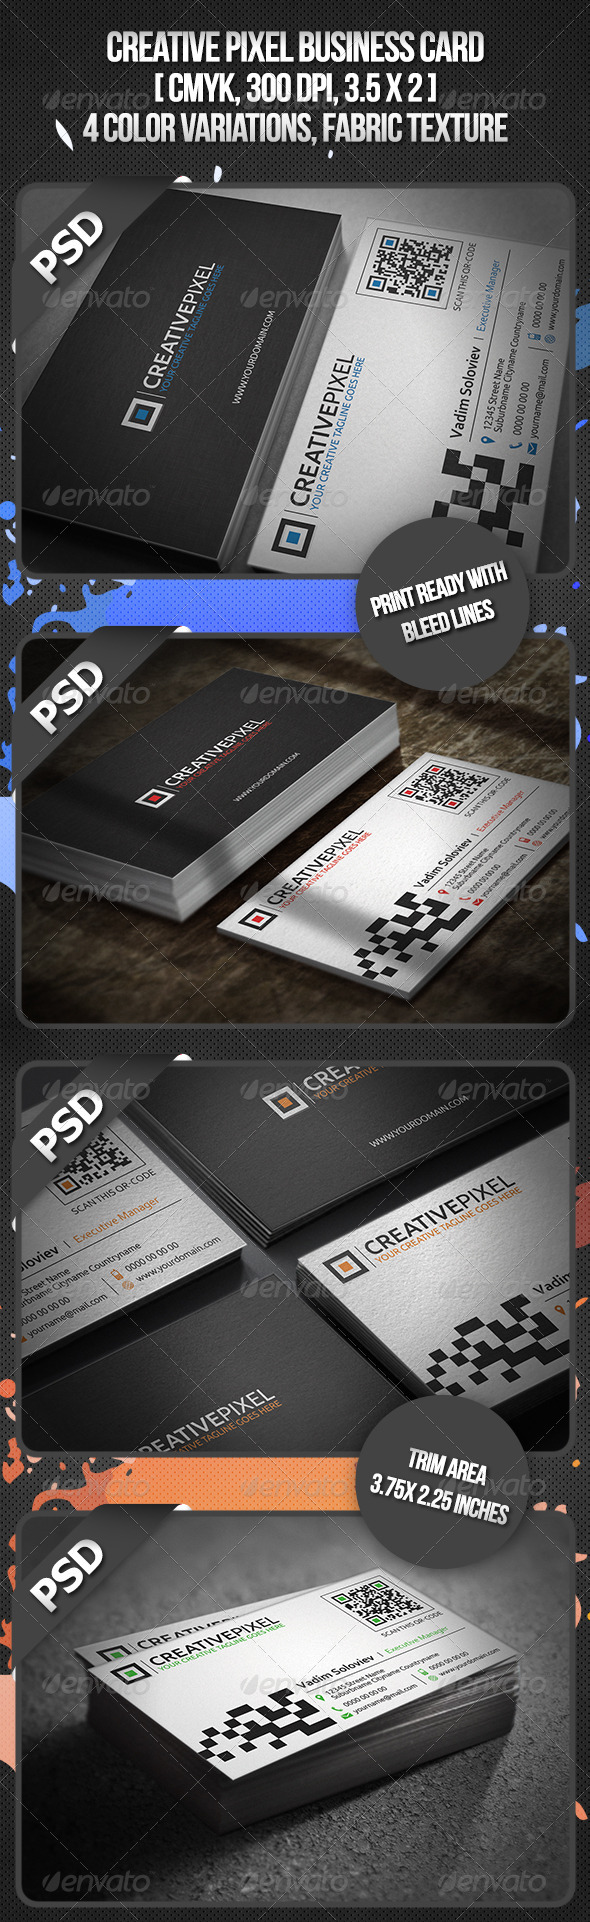 GraphicRiver Creative Pixel Business Card 3454963